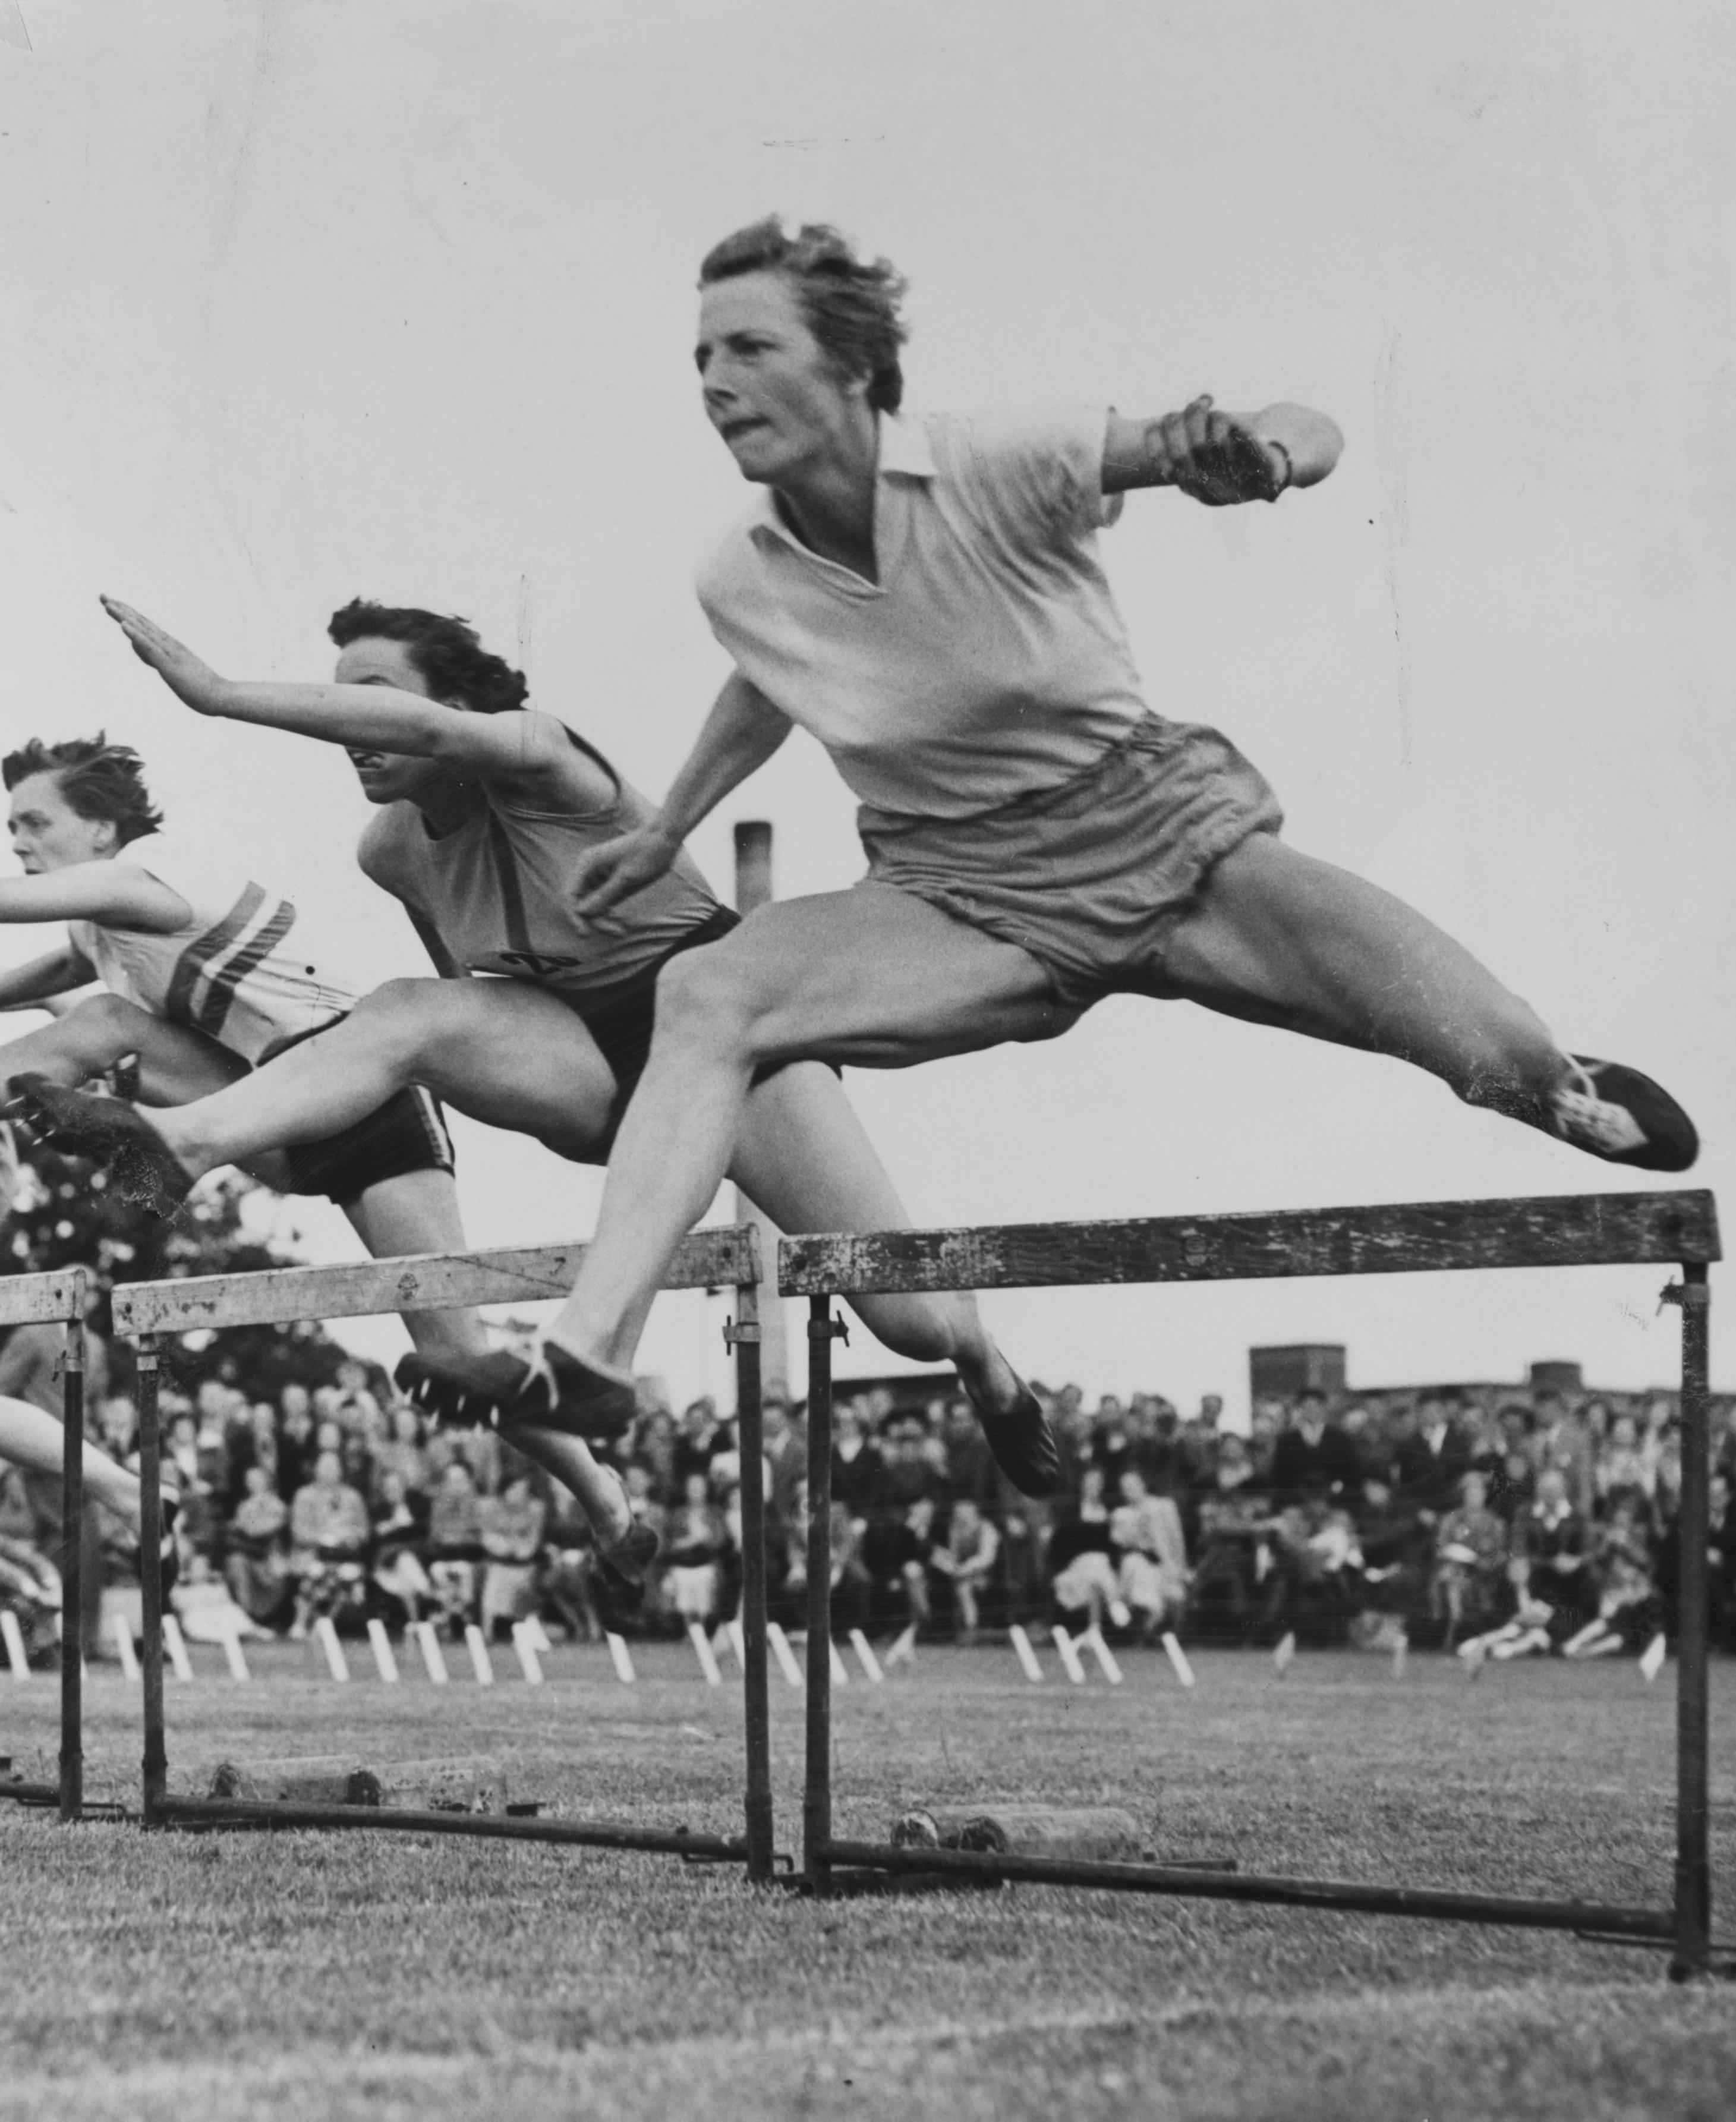 Fanny Blankers-Koen crushed sexist stereotypes with her athletic achievements